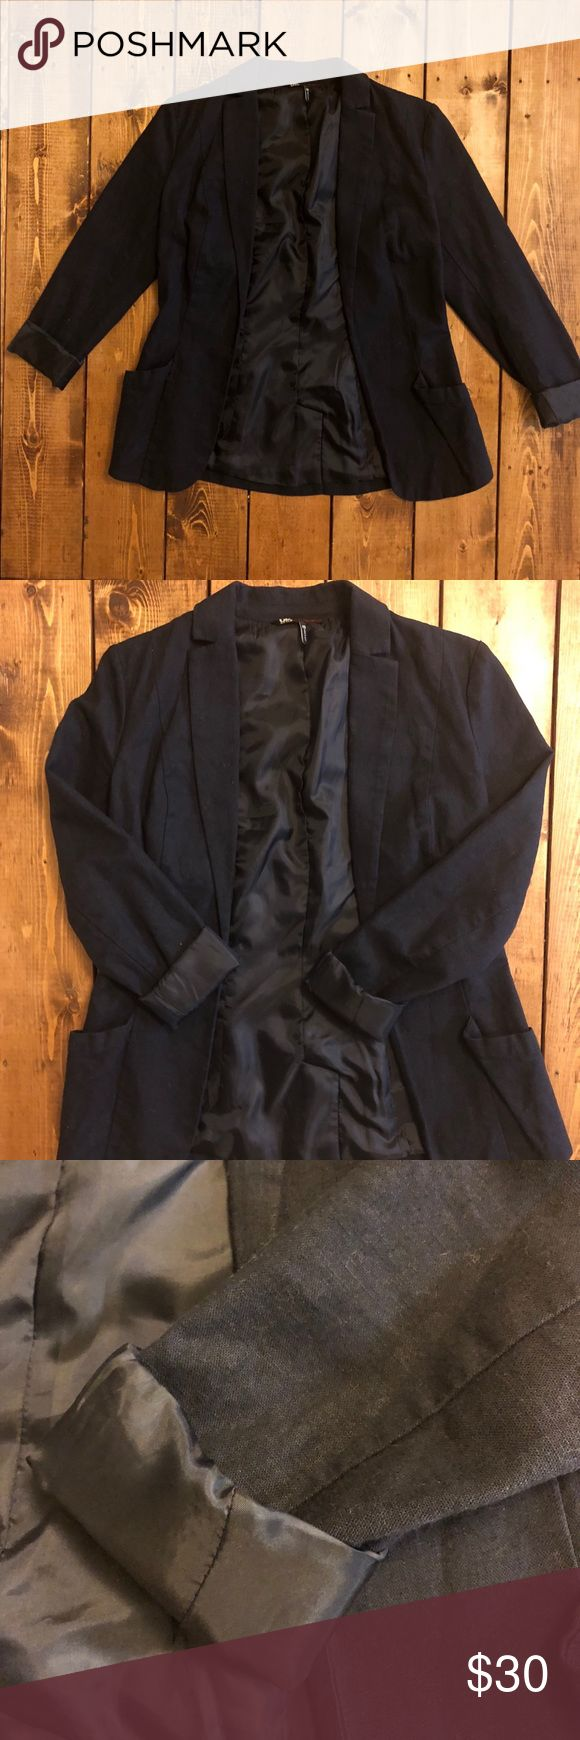 💙French Connection Navy Blue Blazer💙 French connection blazer! This looks so cute to dress up or down!   55% linen  45% cotton   Feel free to make an offer! French Connection Jackets & Coats Blazers